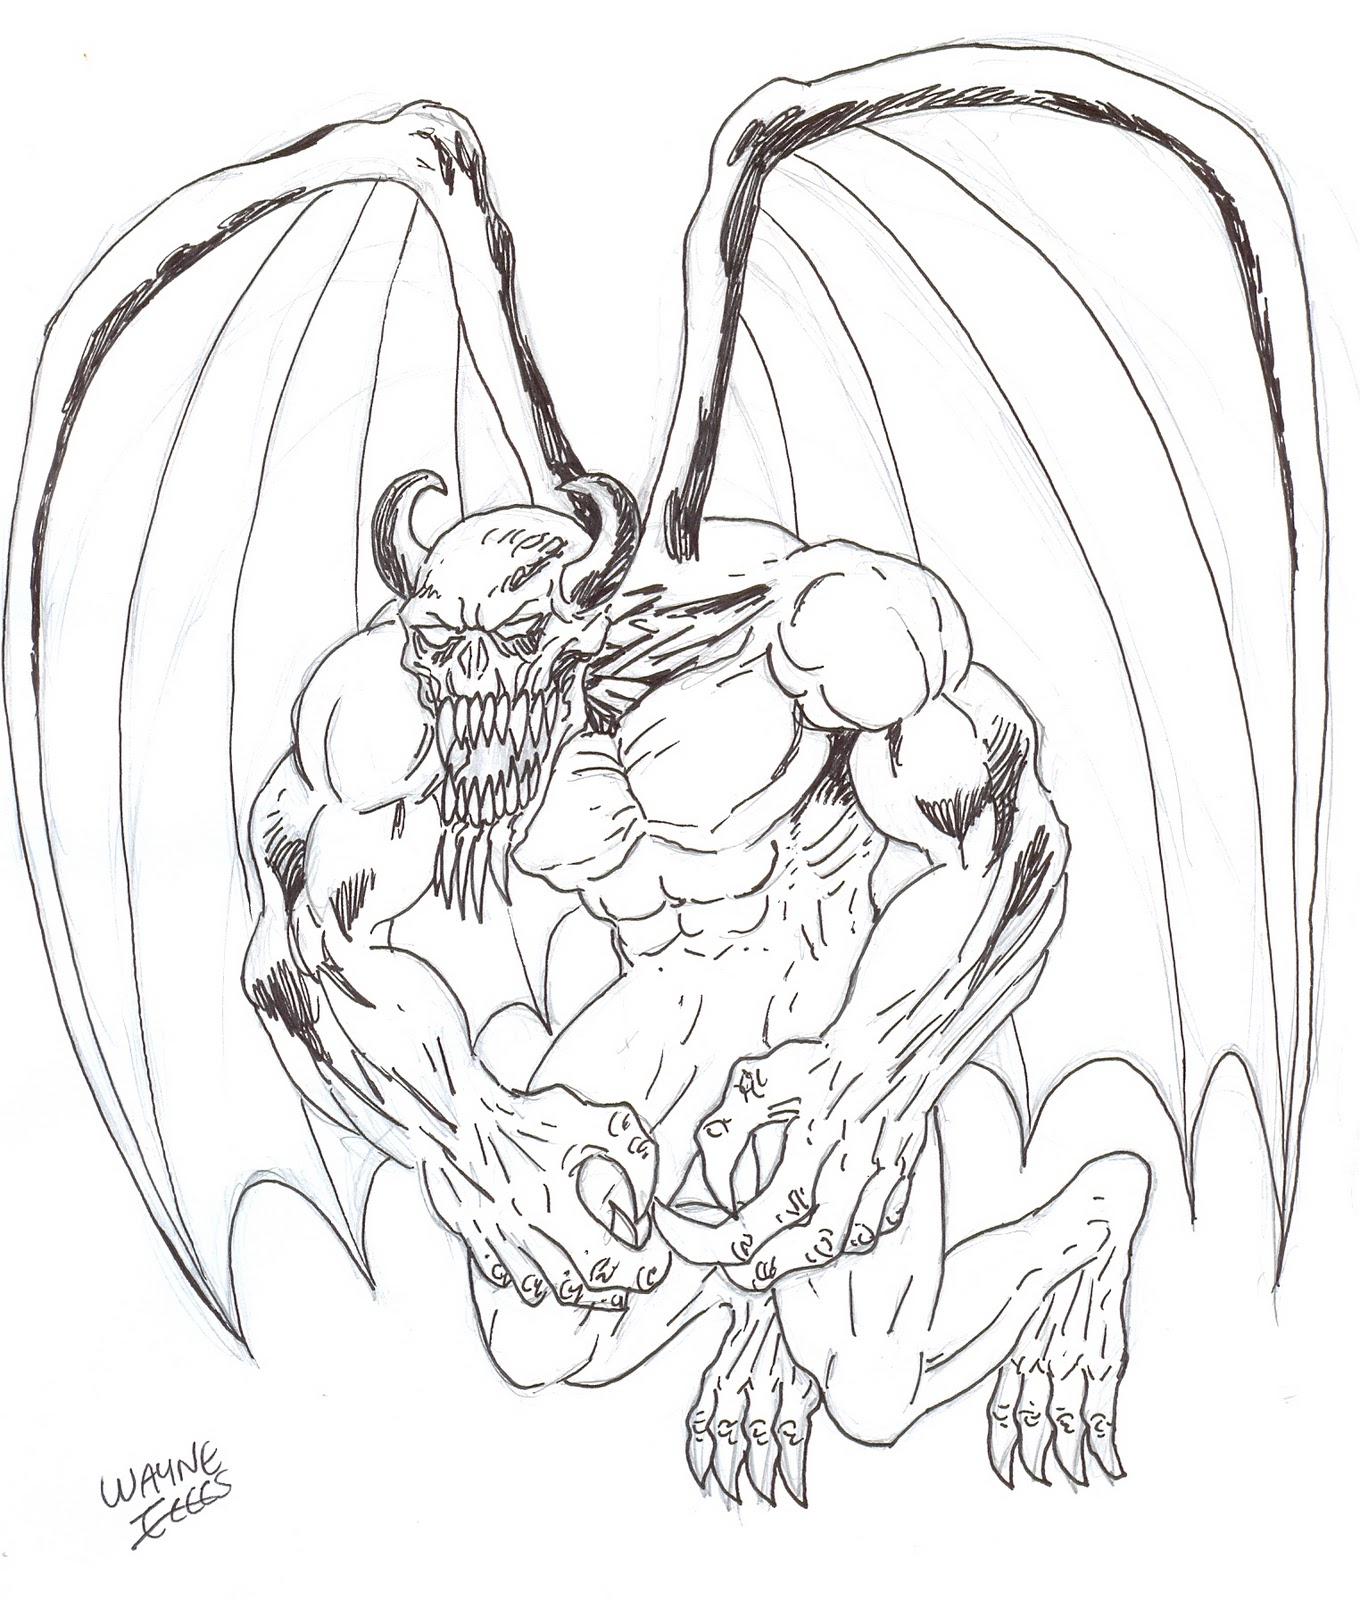 Wayne Tully Horror Art: How To Draw A Hell Demon With Wings